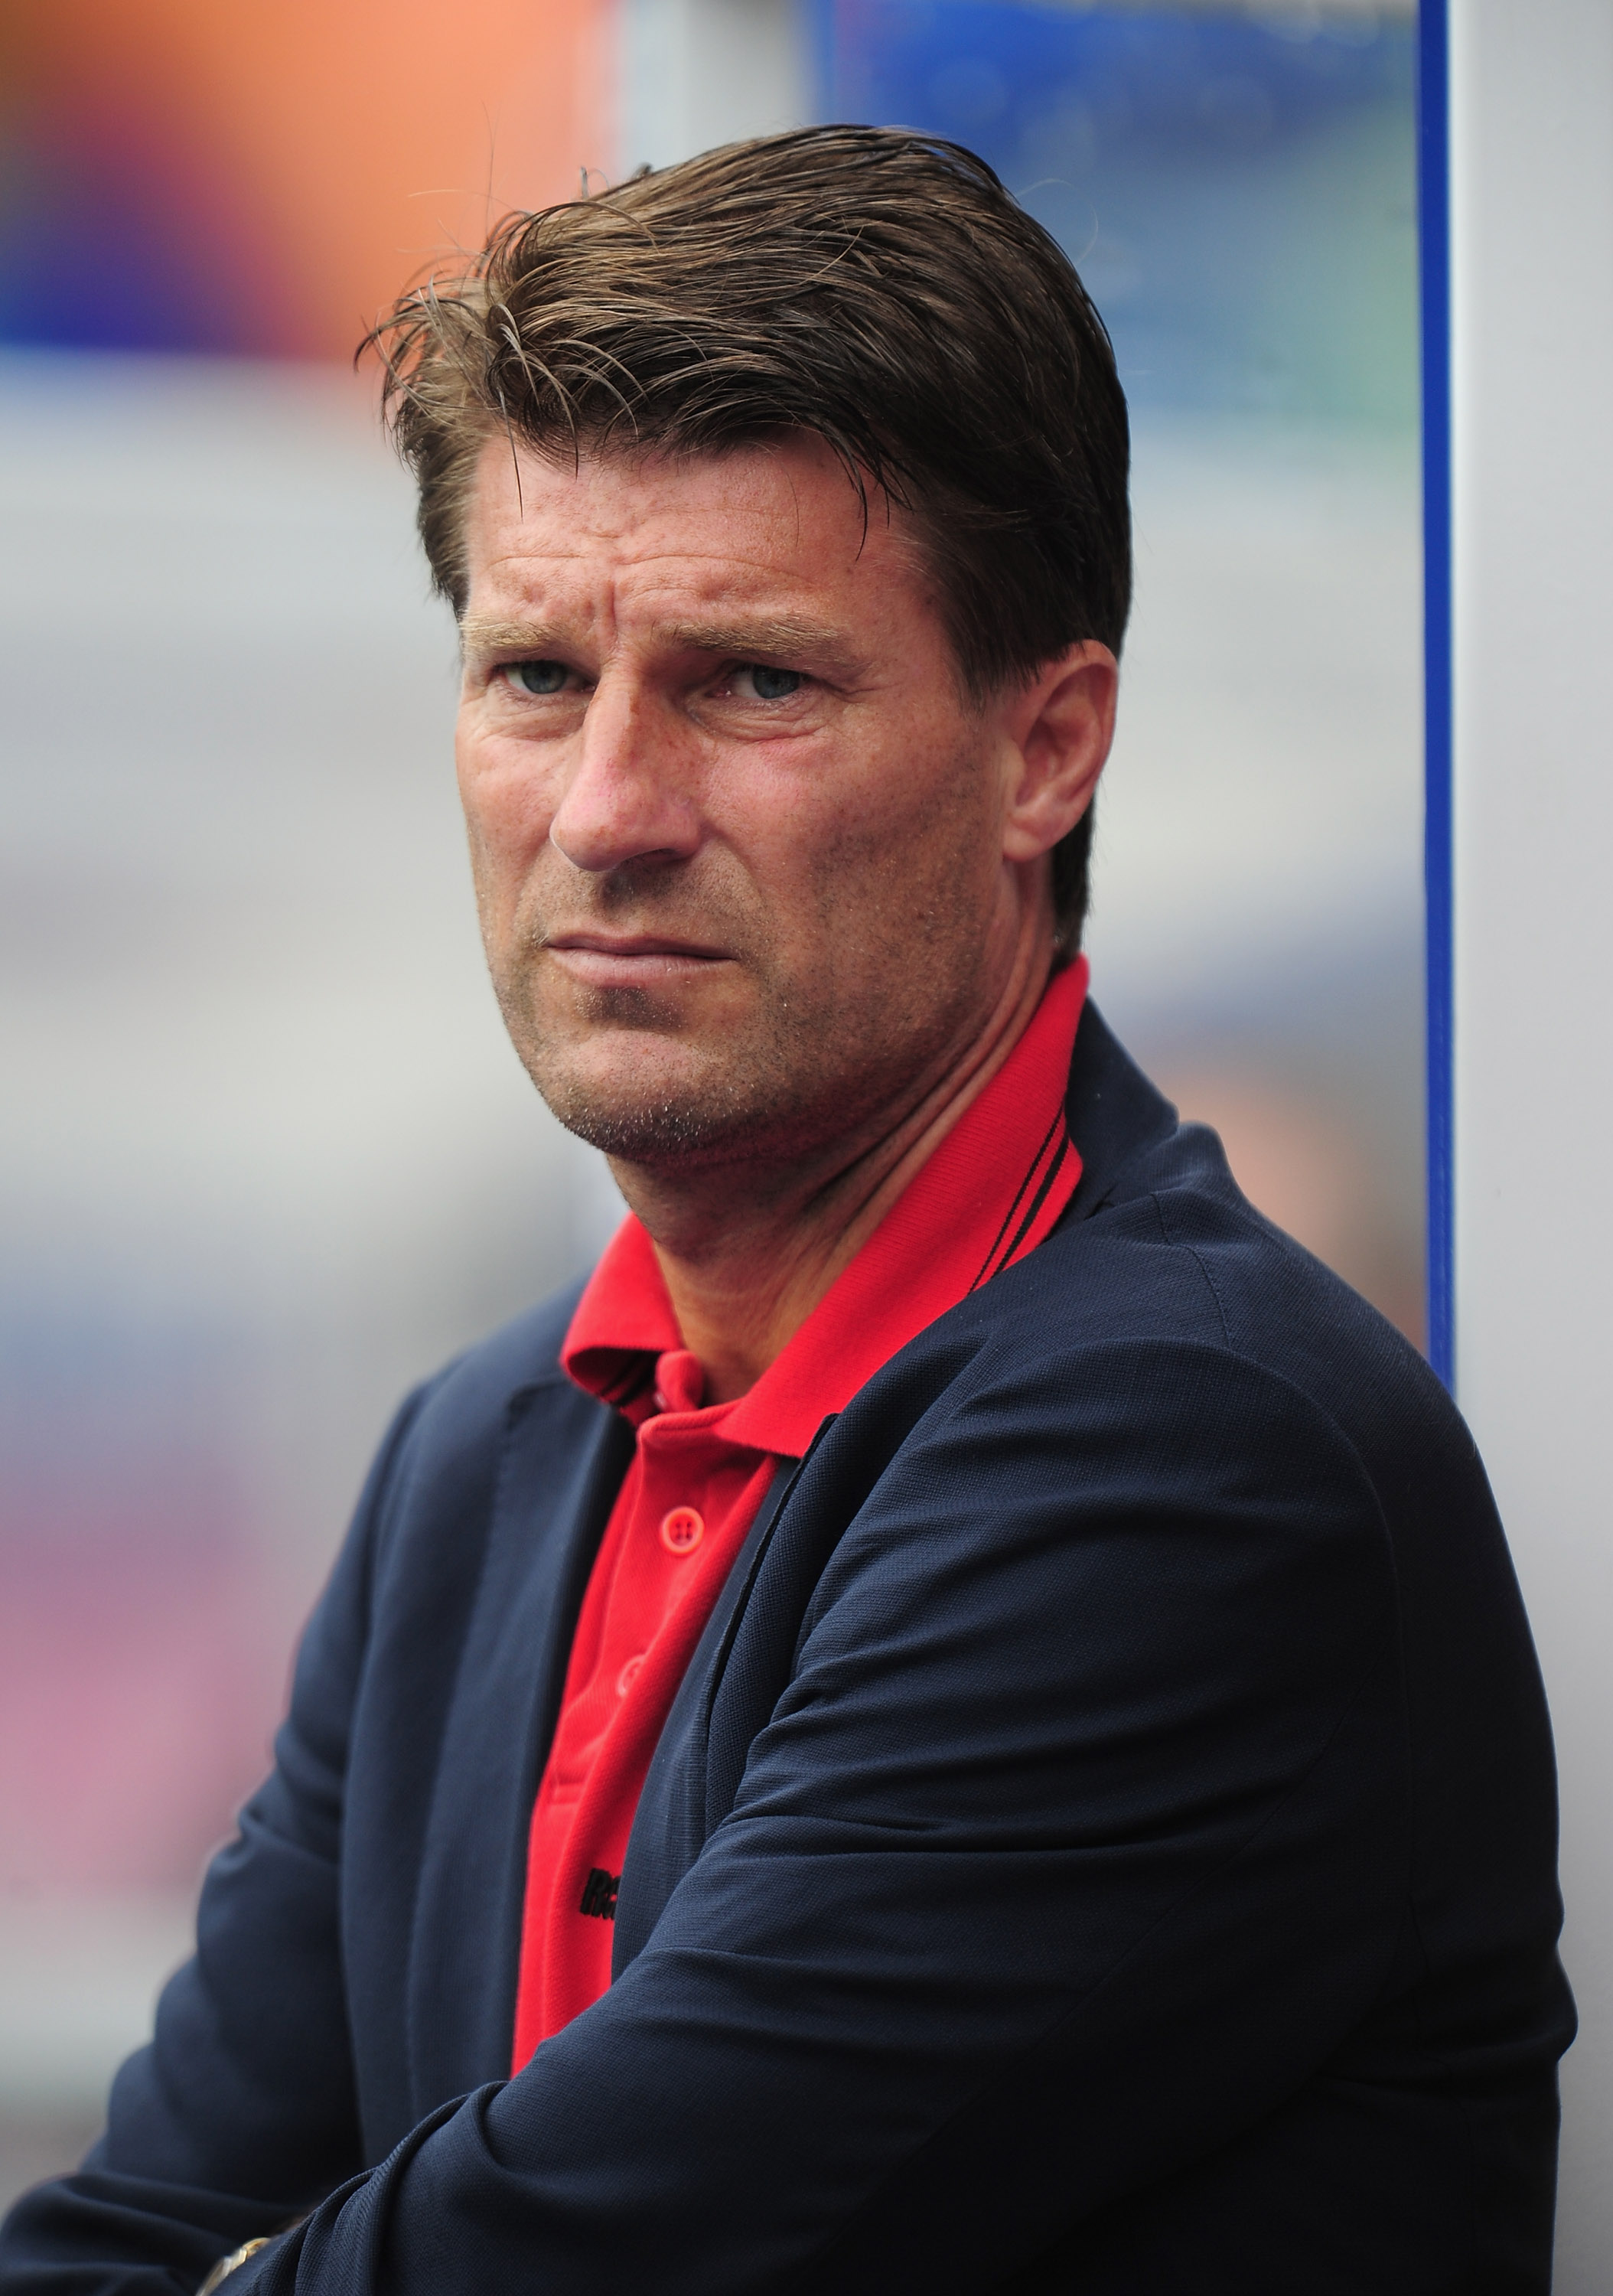 BIRMINGHAM, ENGLAND - AUGUST 07:  Michael Laudrup the Real Mallorca coach during the friendly match between Birmingham City and Real Mallorca at St. Andrew's Stadium on August 7, 2010 in Birmingham, England.  (Photo by Shaun Botterill/Getty Images)